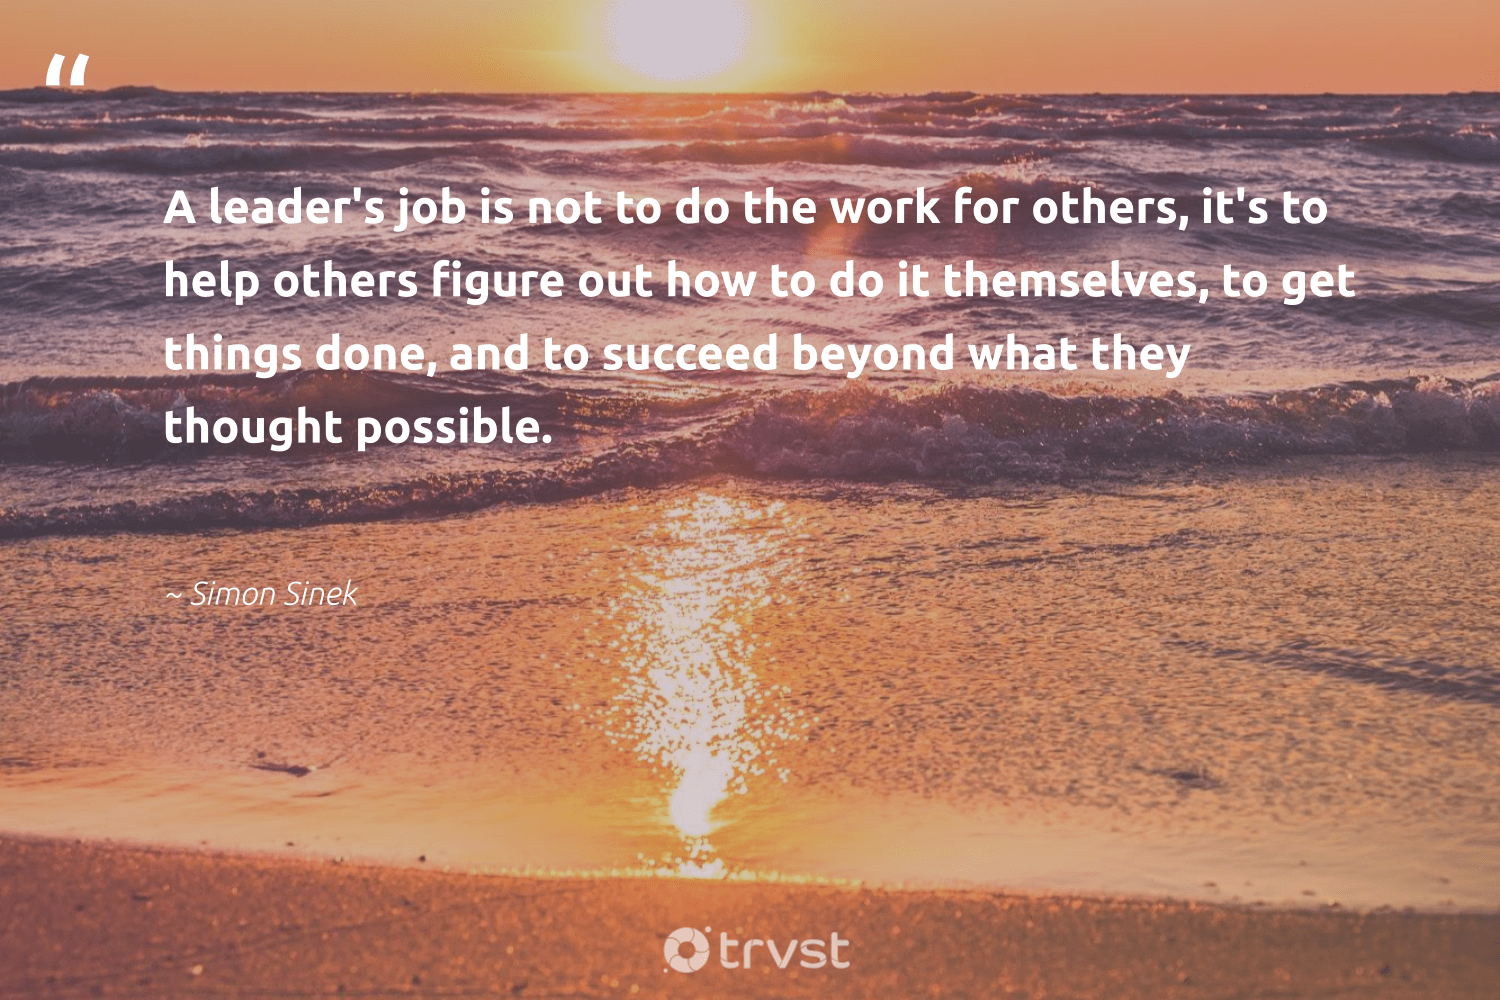 """A leader's job is not to do the work for others, it's to help others figure out how to do it themselves, to get things done, and to succeed beyond what they thought possible.""  - Simon Sinek #trvst #quotes #begreat #socialimpact #nevergiveup #dotherightthing #softskills #socialchange #futureofwork #ecoconscious #bethechange #beinspired"